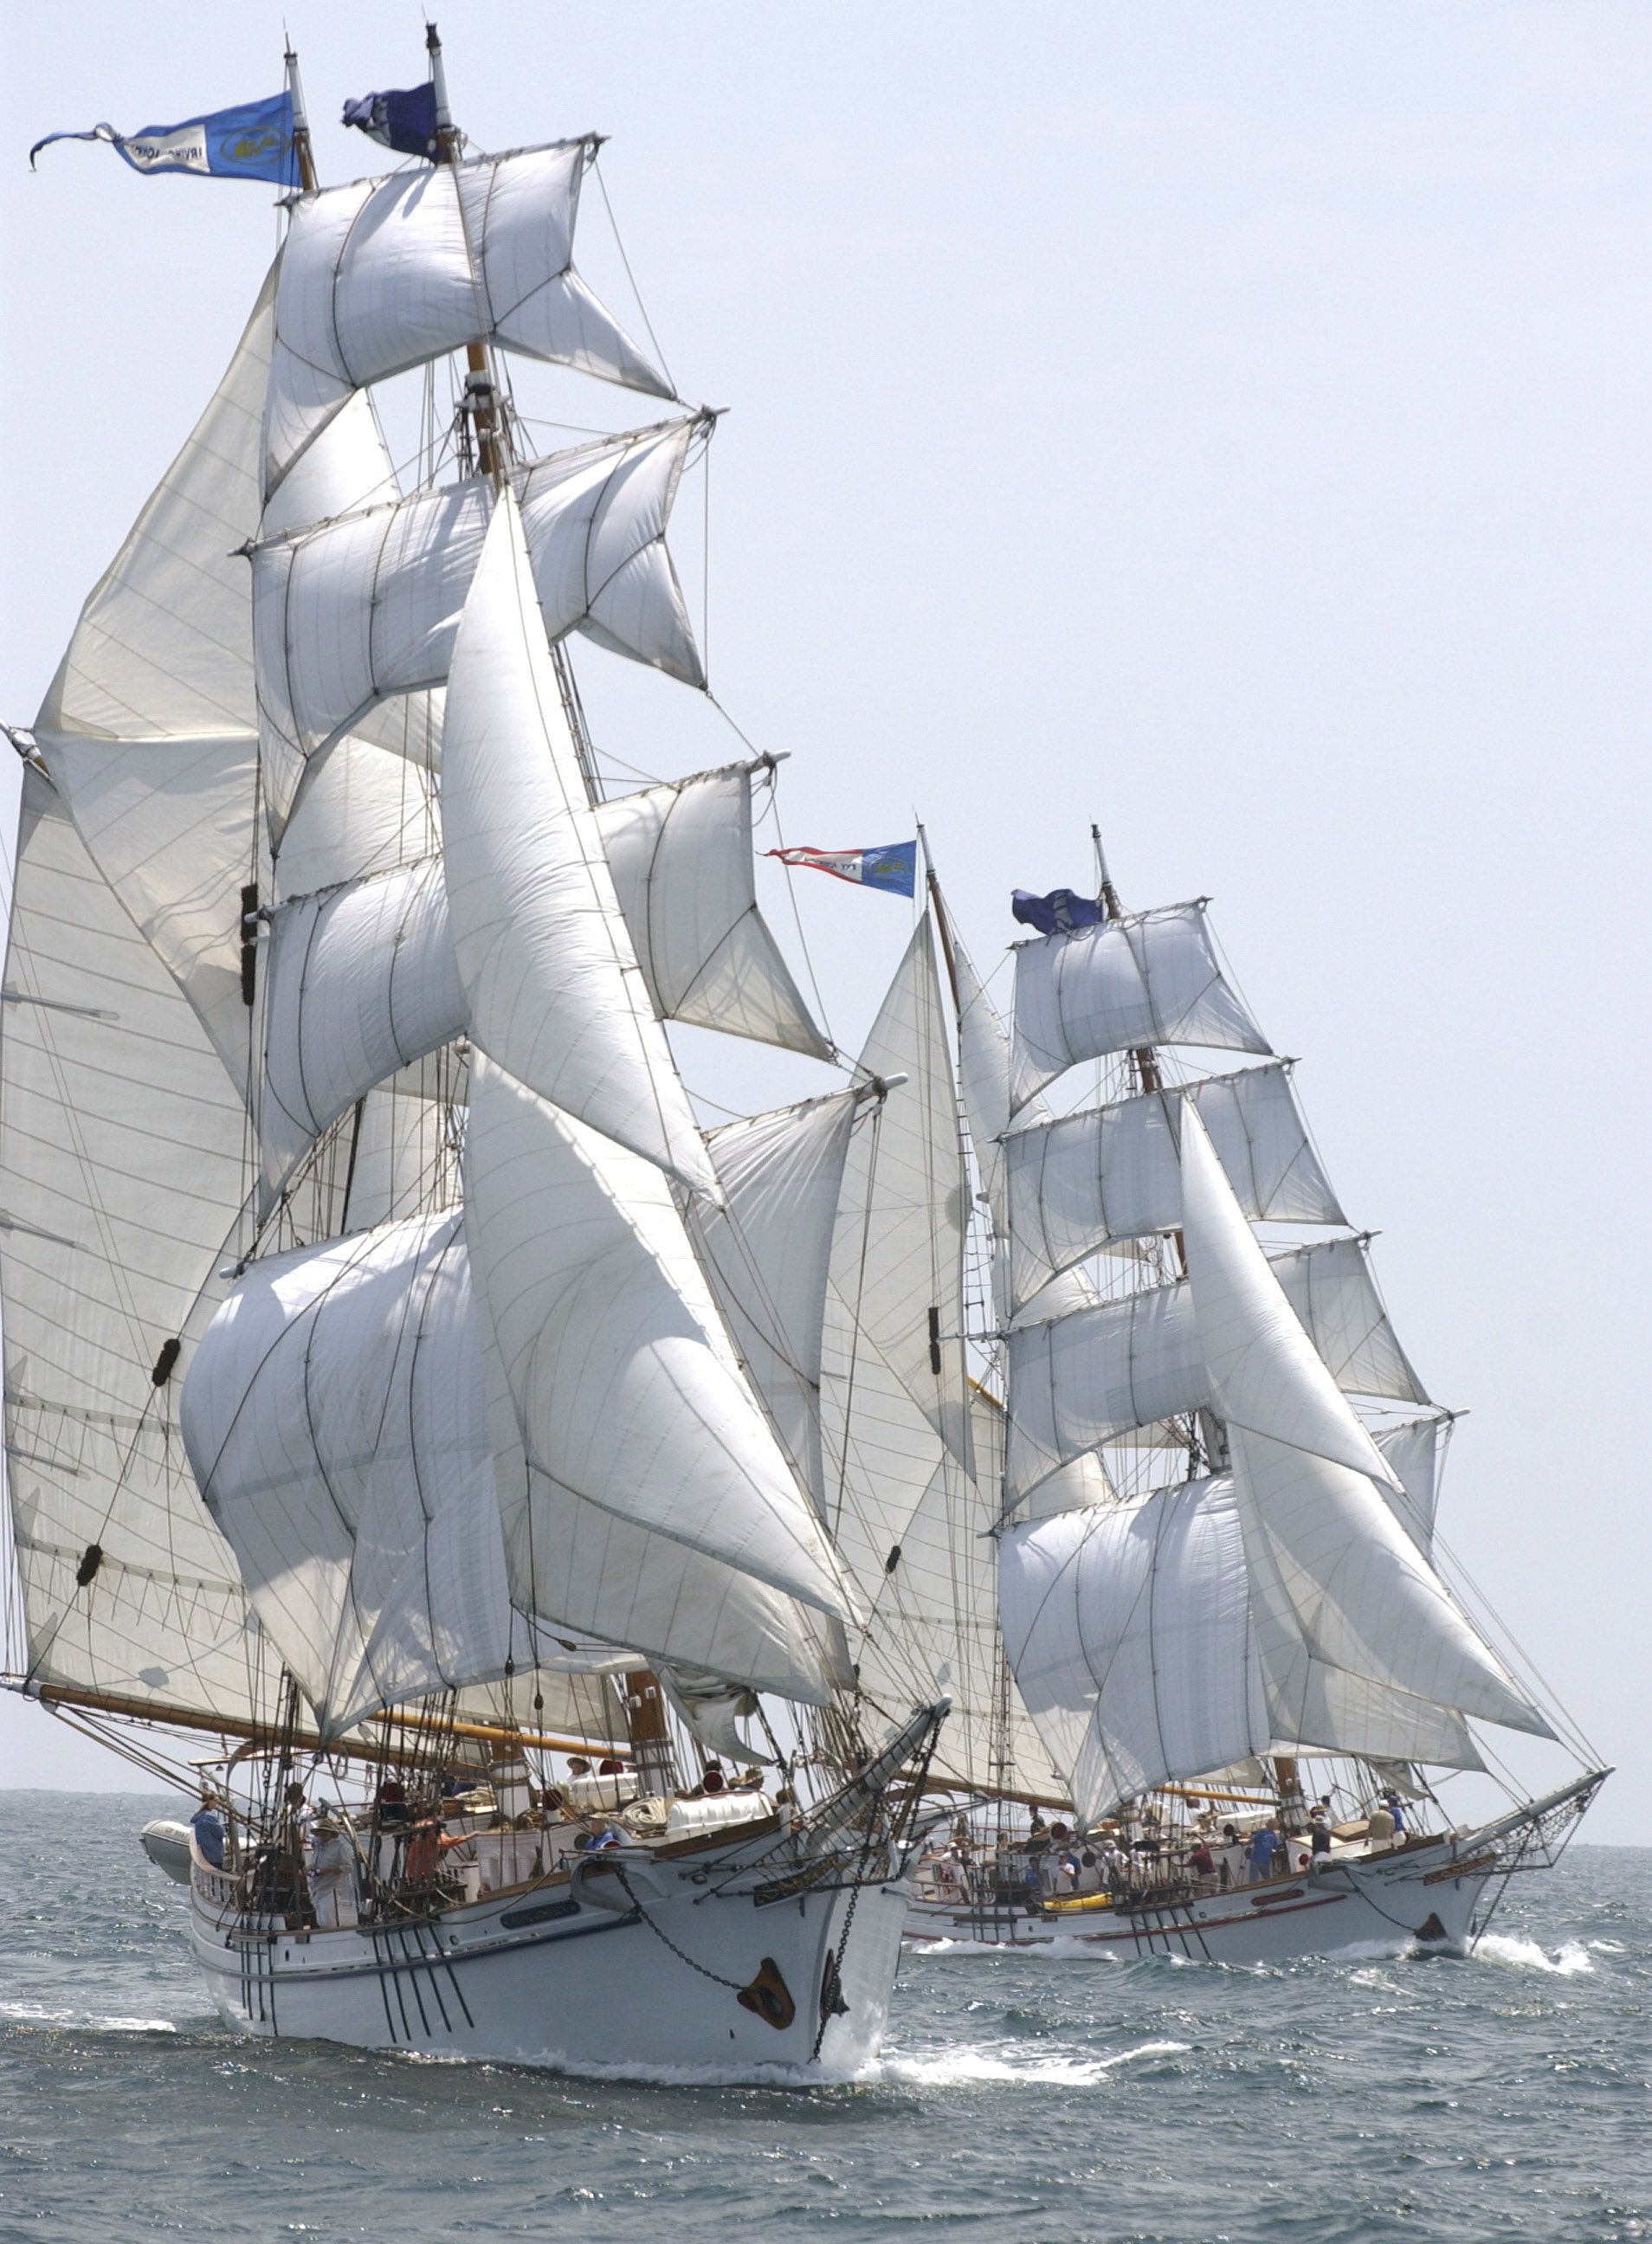 the twin brigantines irving johnson and exy johnson under full sail with harbor area youth as far we know these identical tall ships are the only